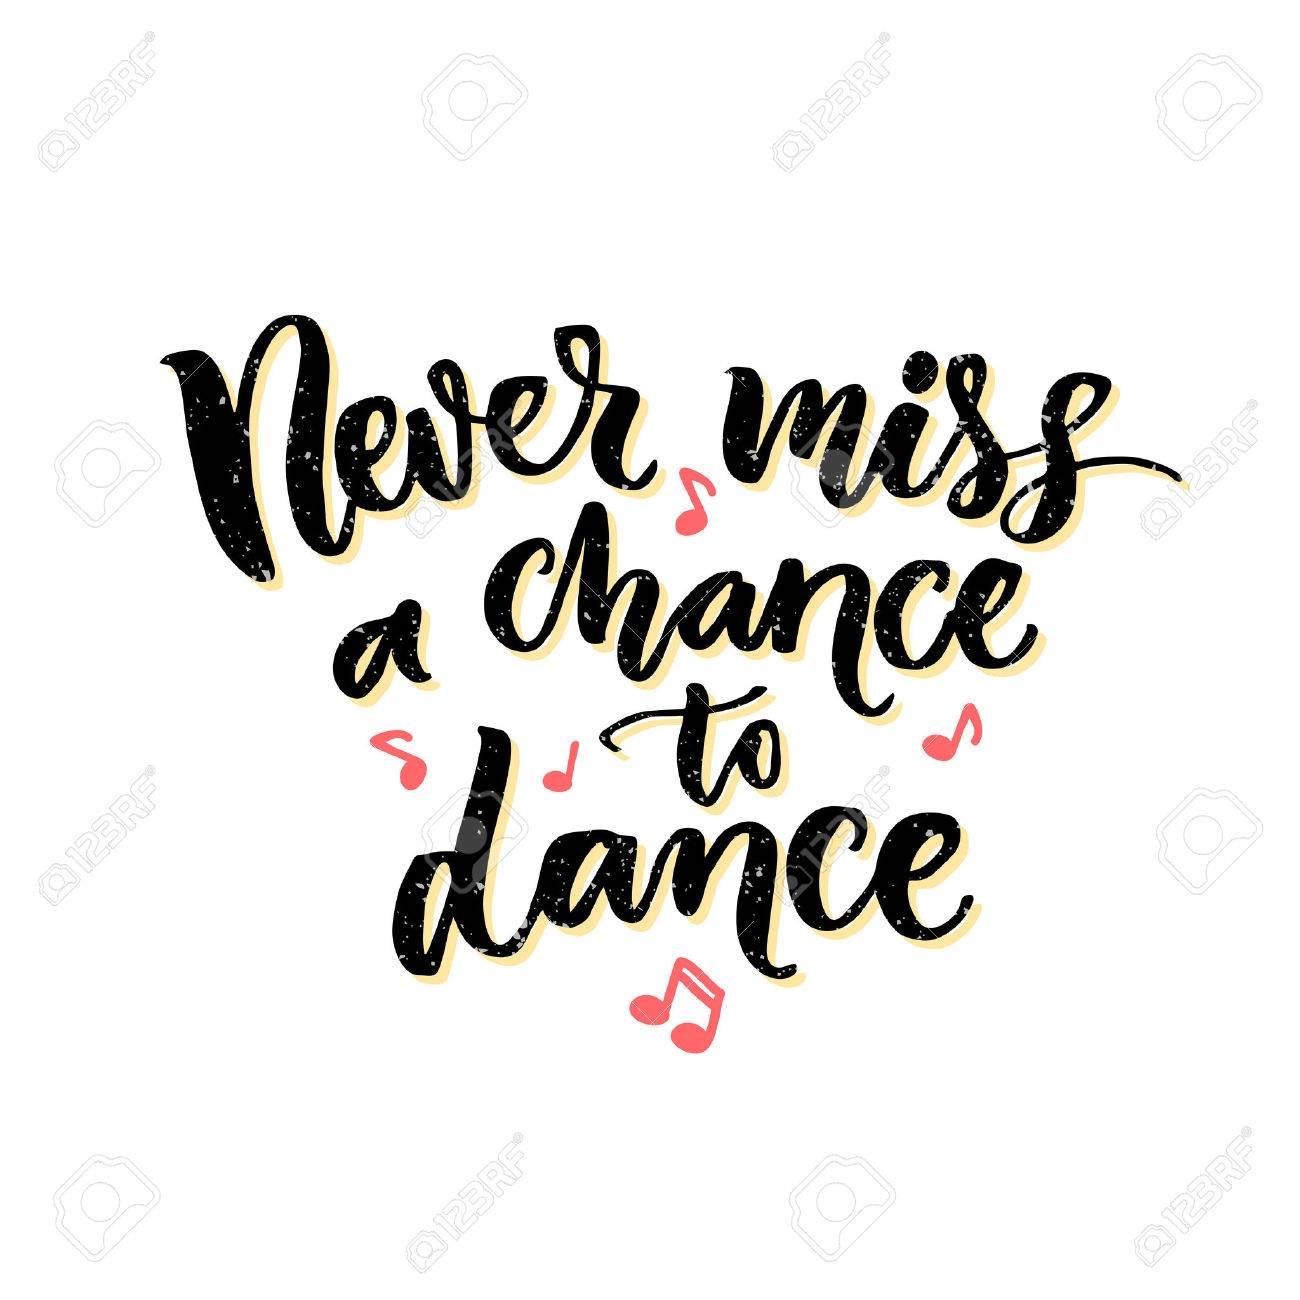 Poster design notes - Never Miss A Chance To Dance Inspiration Phrase About Dancing Ballroom Poster Design With